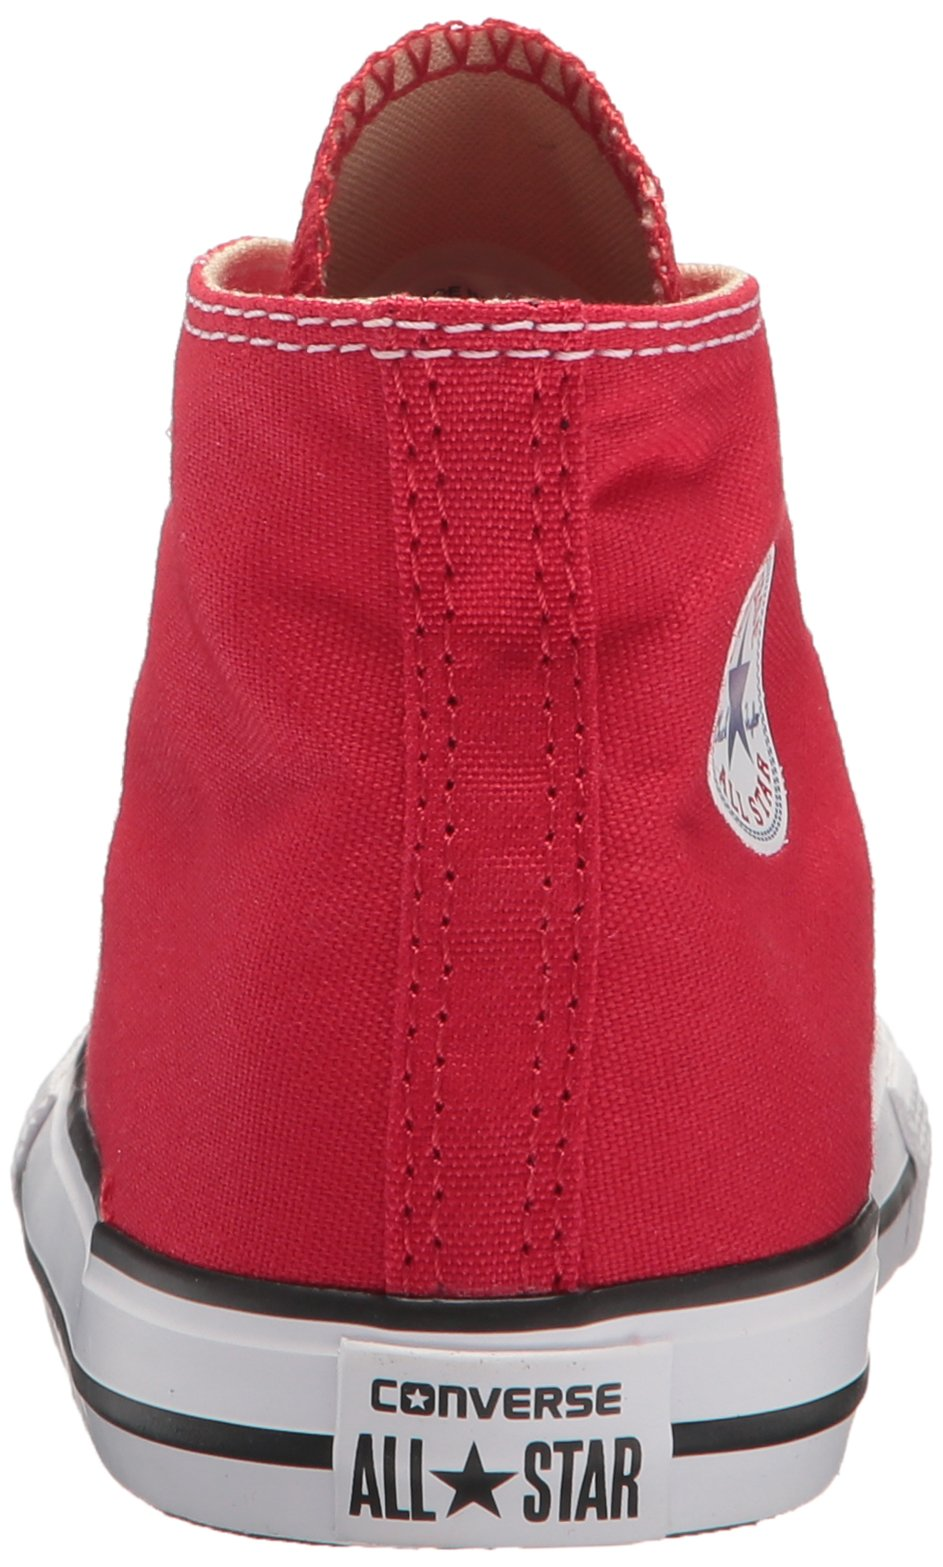 Converse Kids Chuck Taylor Classic Hi Red Sneaker - 10.5 by Converse (Image #2)